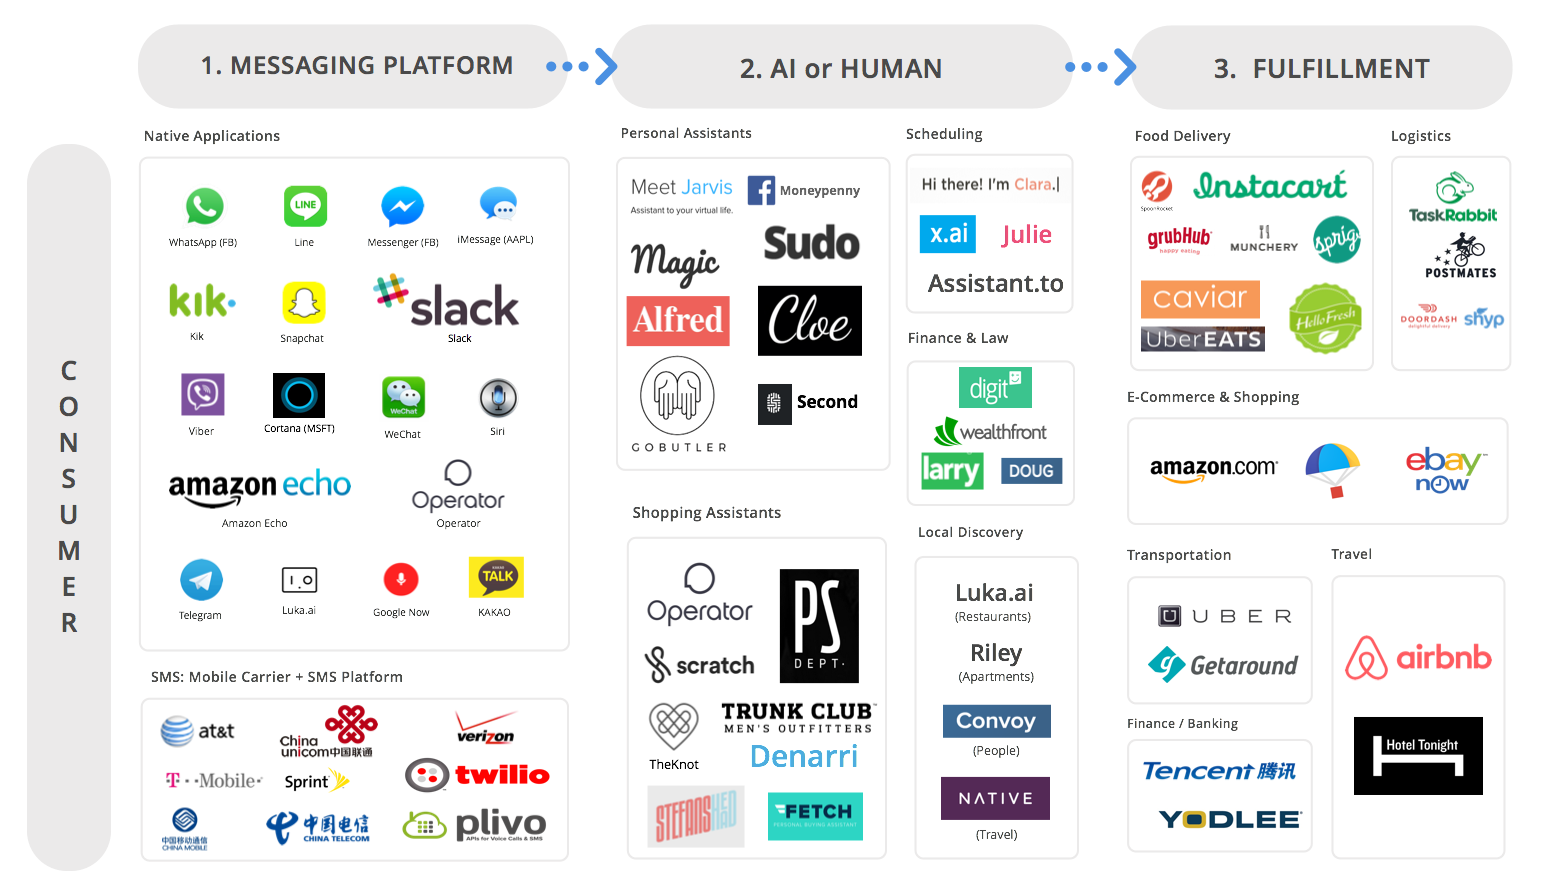 US Messaging Ecosystem v4